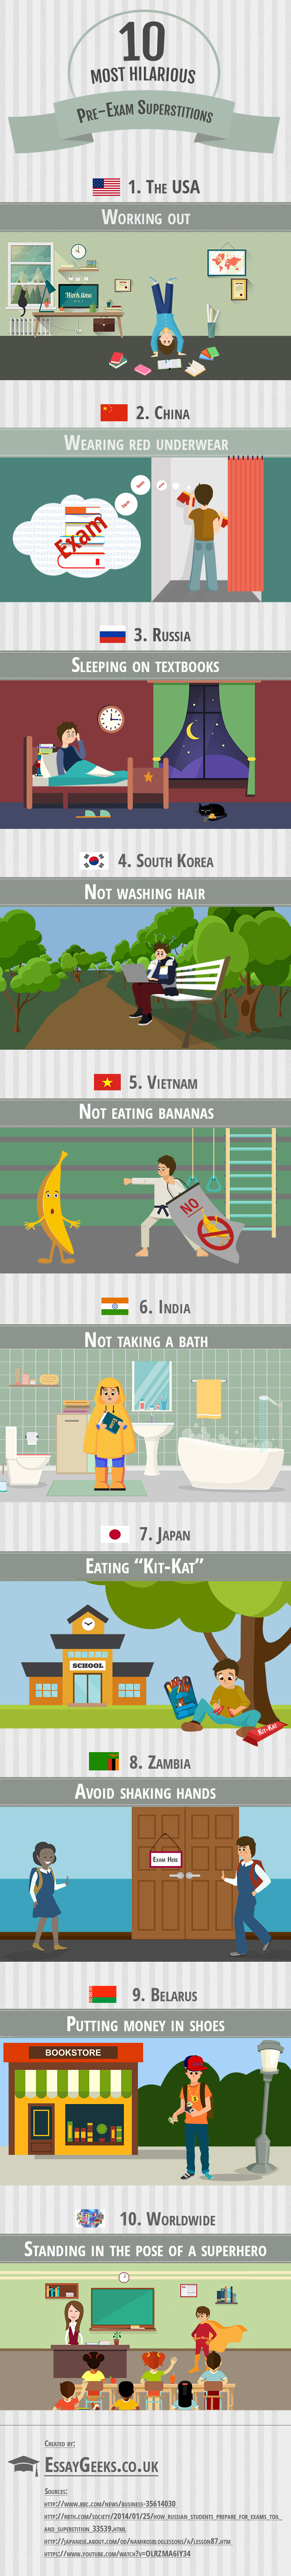 infographic 10 most hilarious pre-exam superstitions